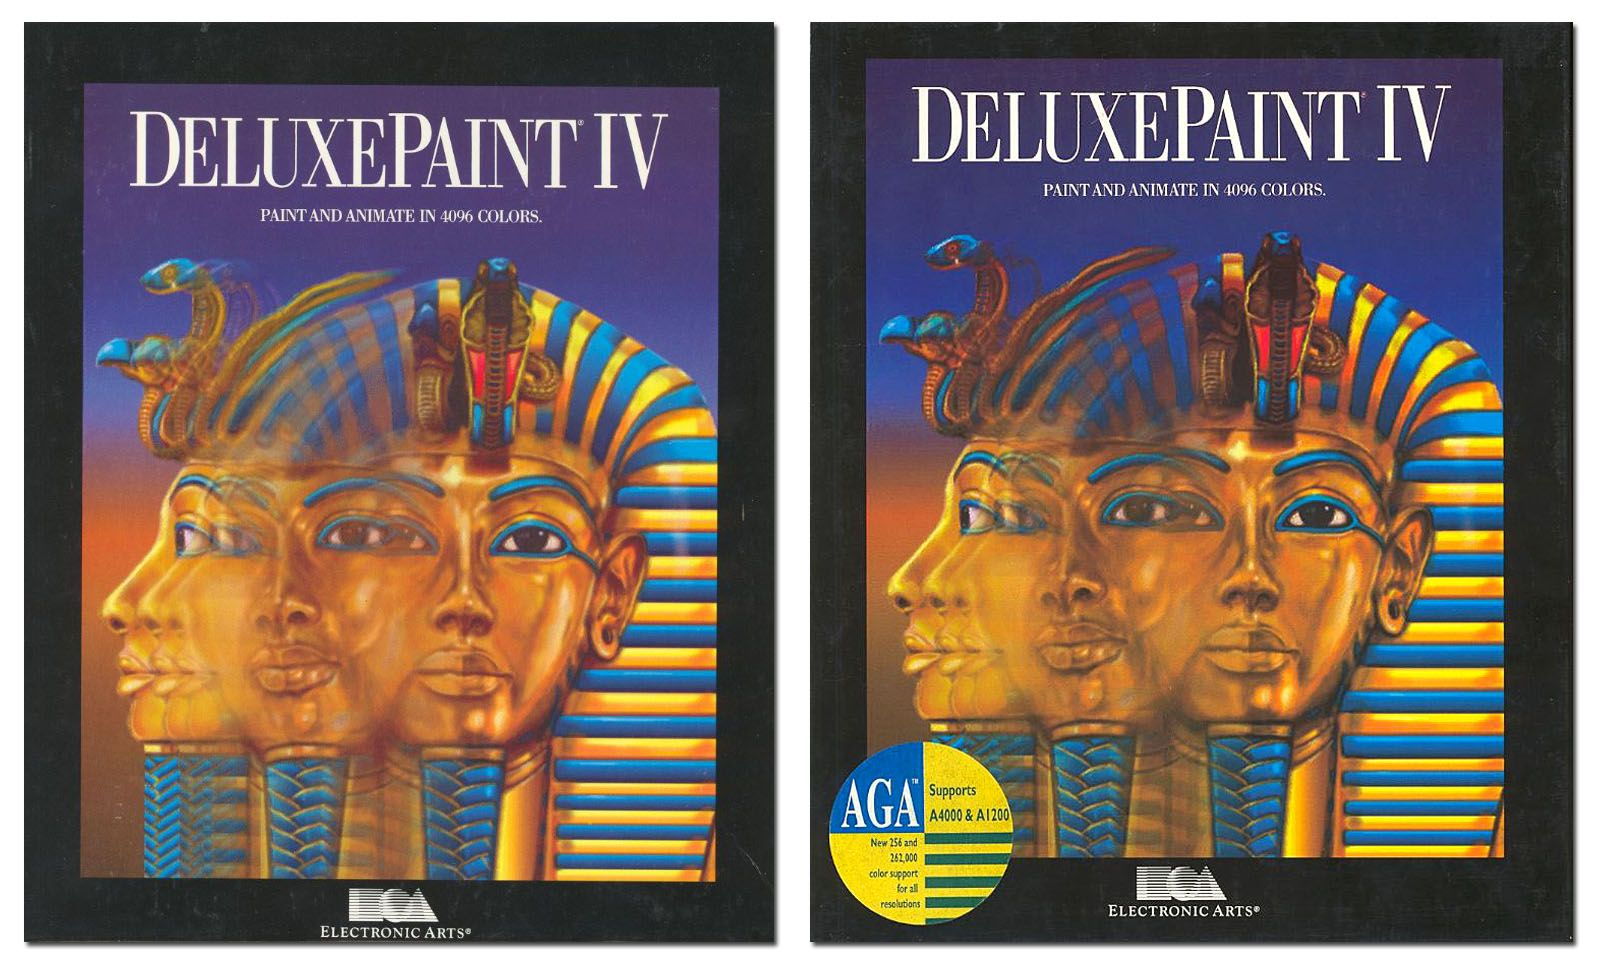 Deluxe Paint IV AGA